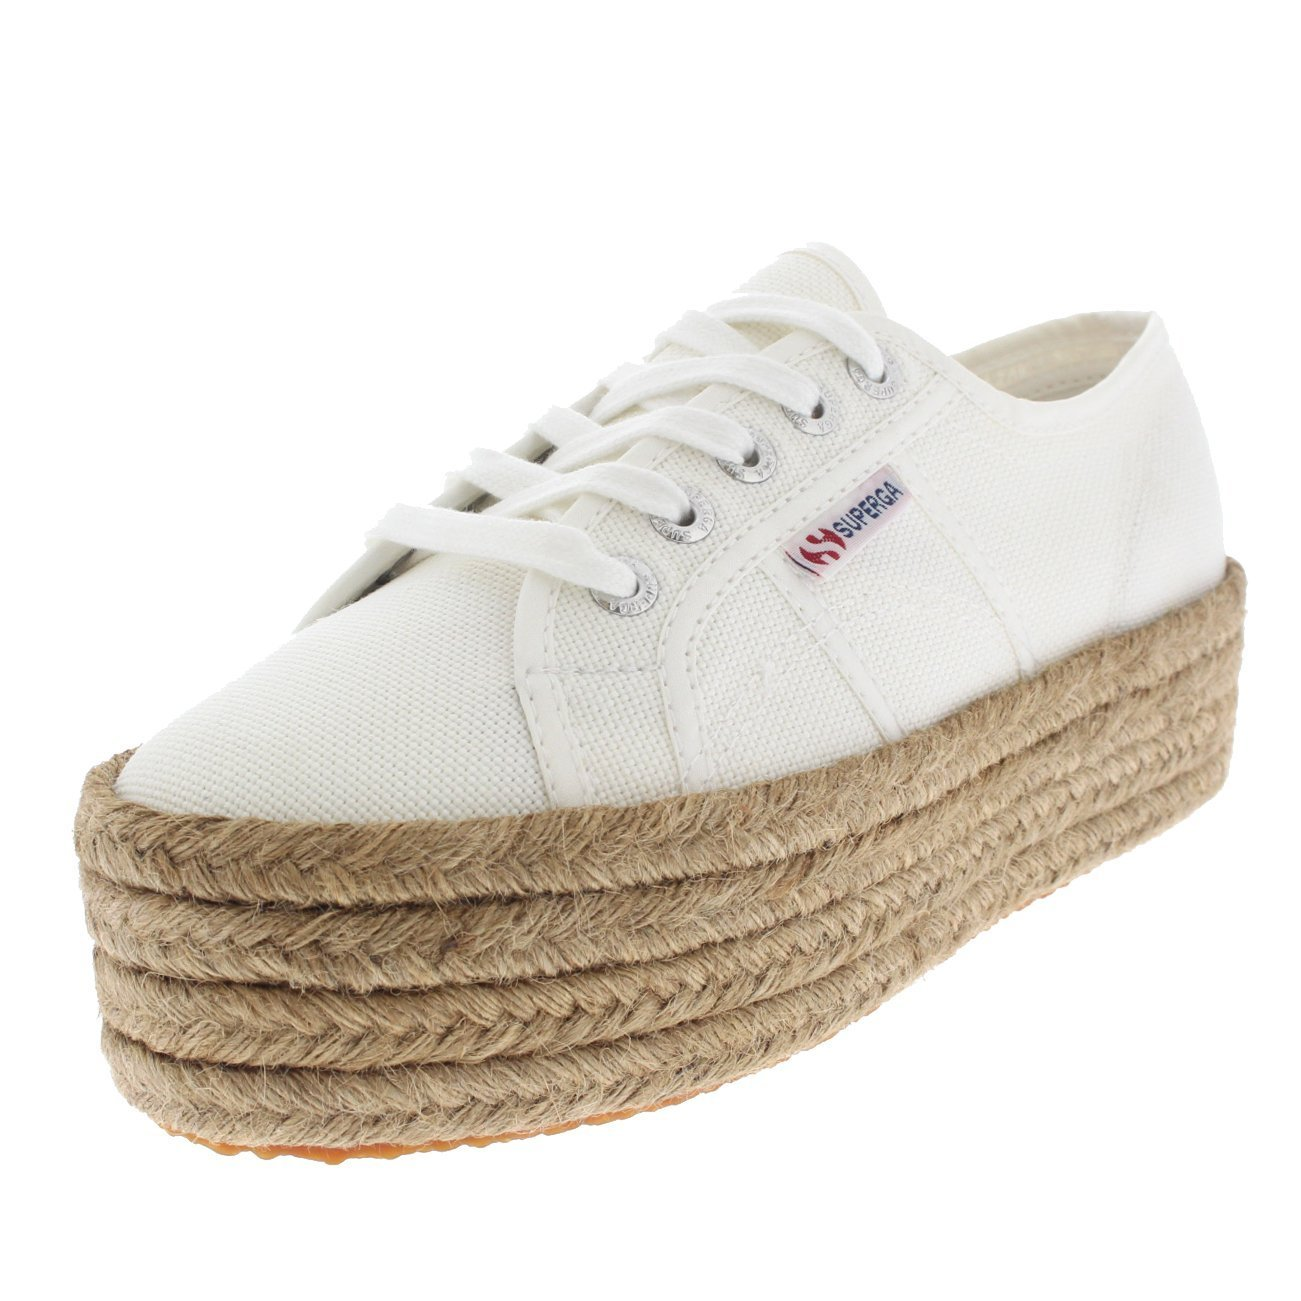 4baeb958d Amazon.com | Superga Womens 2790 Cotropew Wedges Summer Casual Flatform  Sneakers - White - 9.5 | Fashion Sneakers